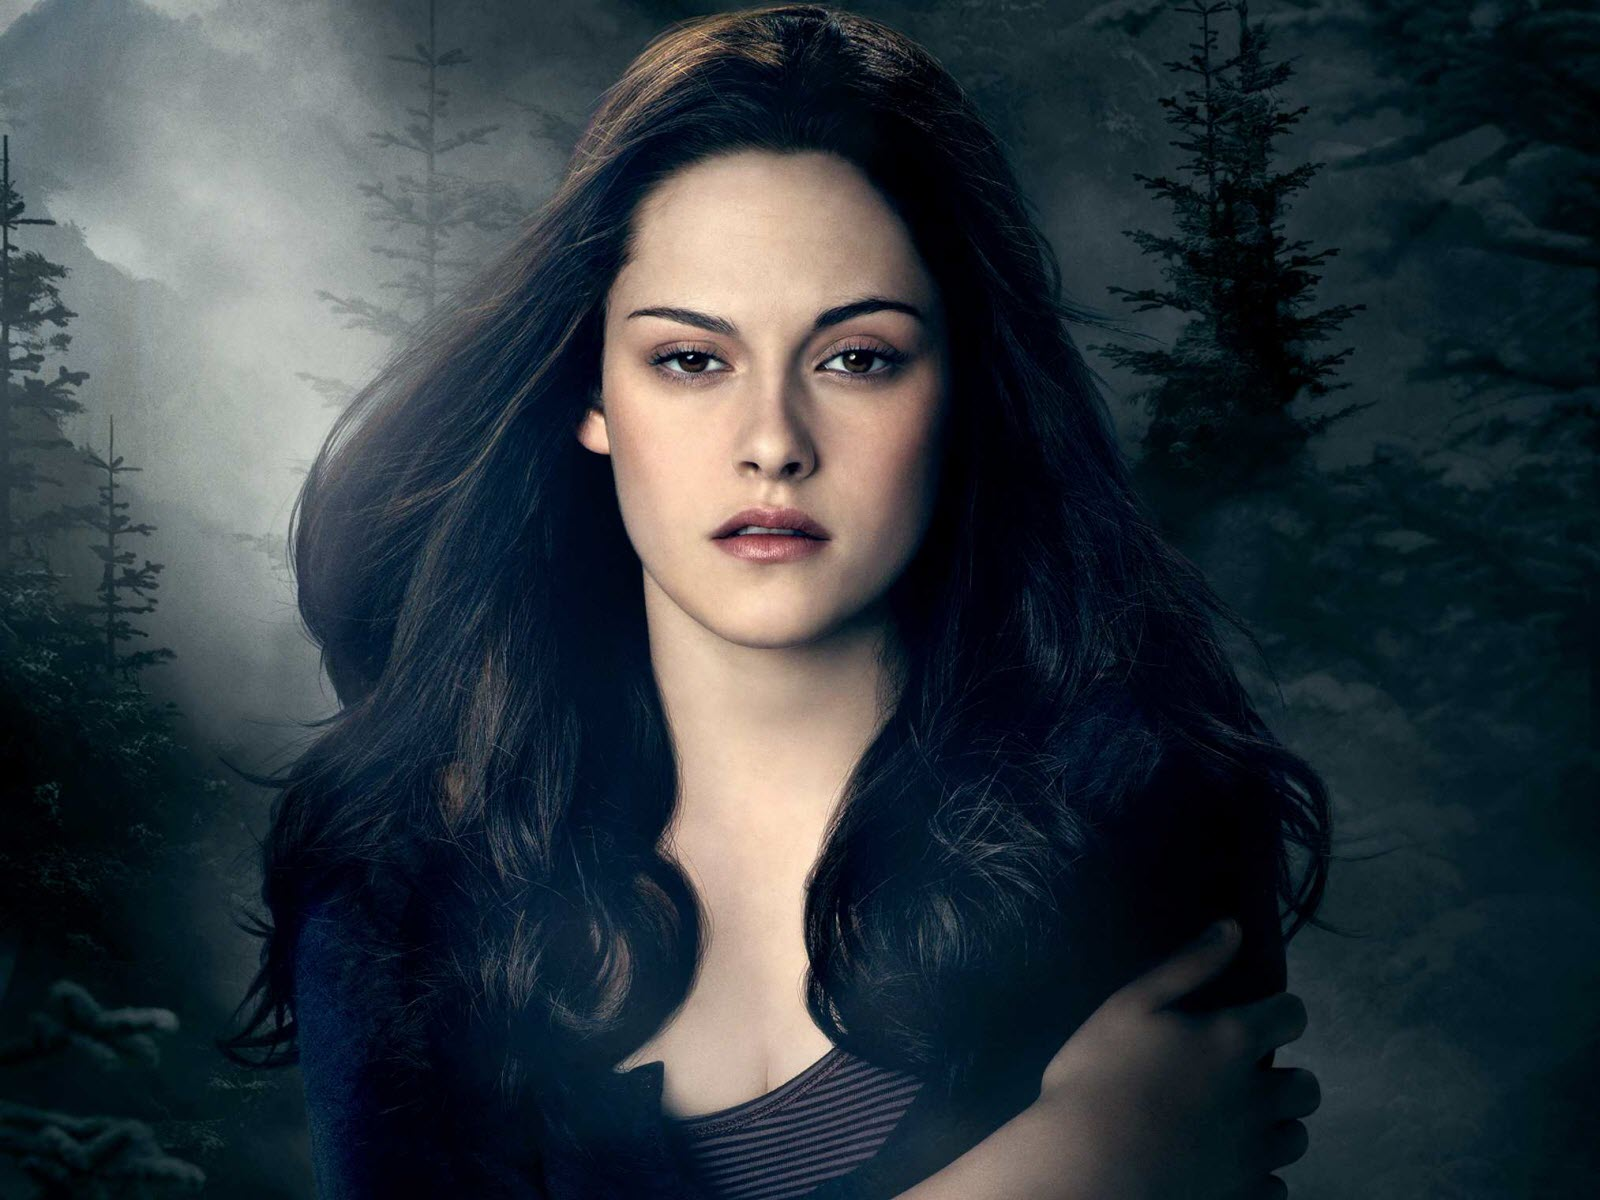 Kristen Stewart in Twilight Saga Eclipse 731.94 Kb